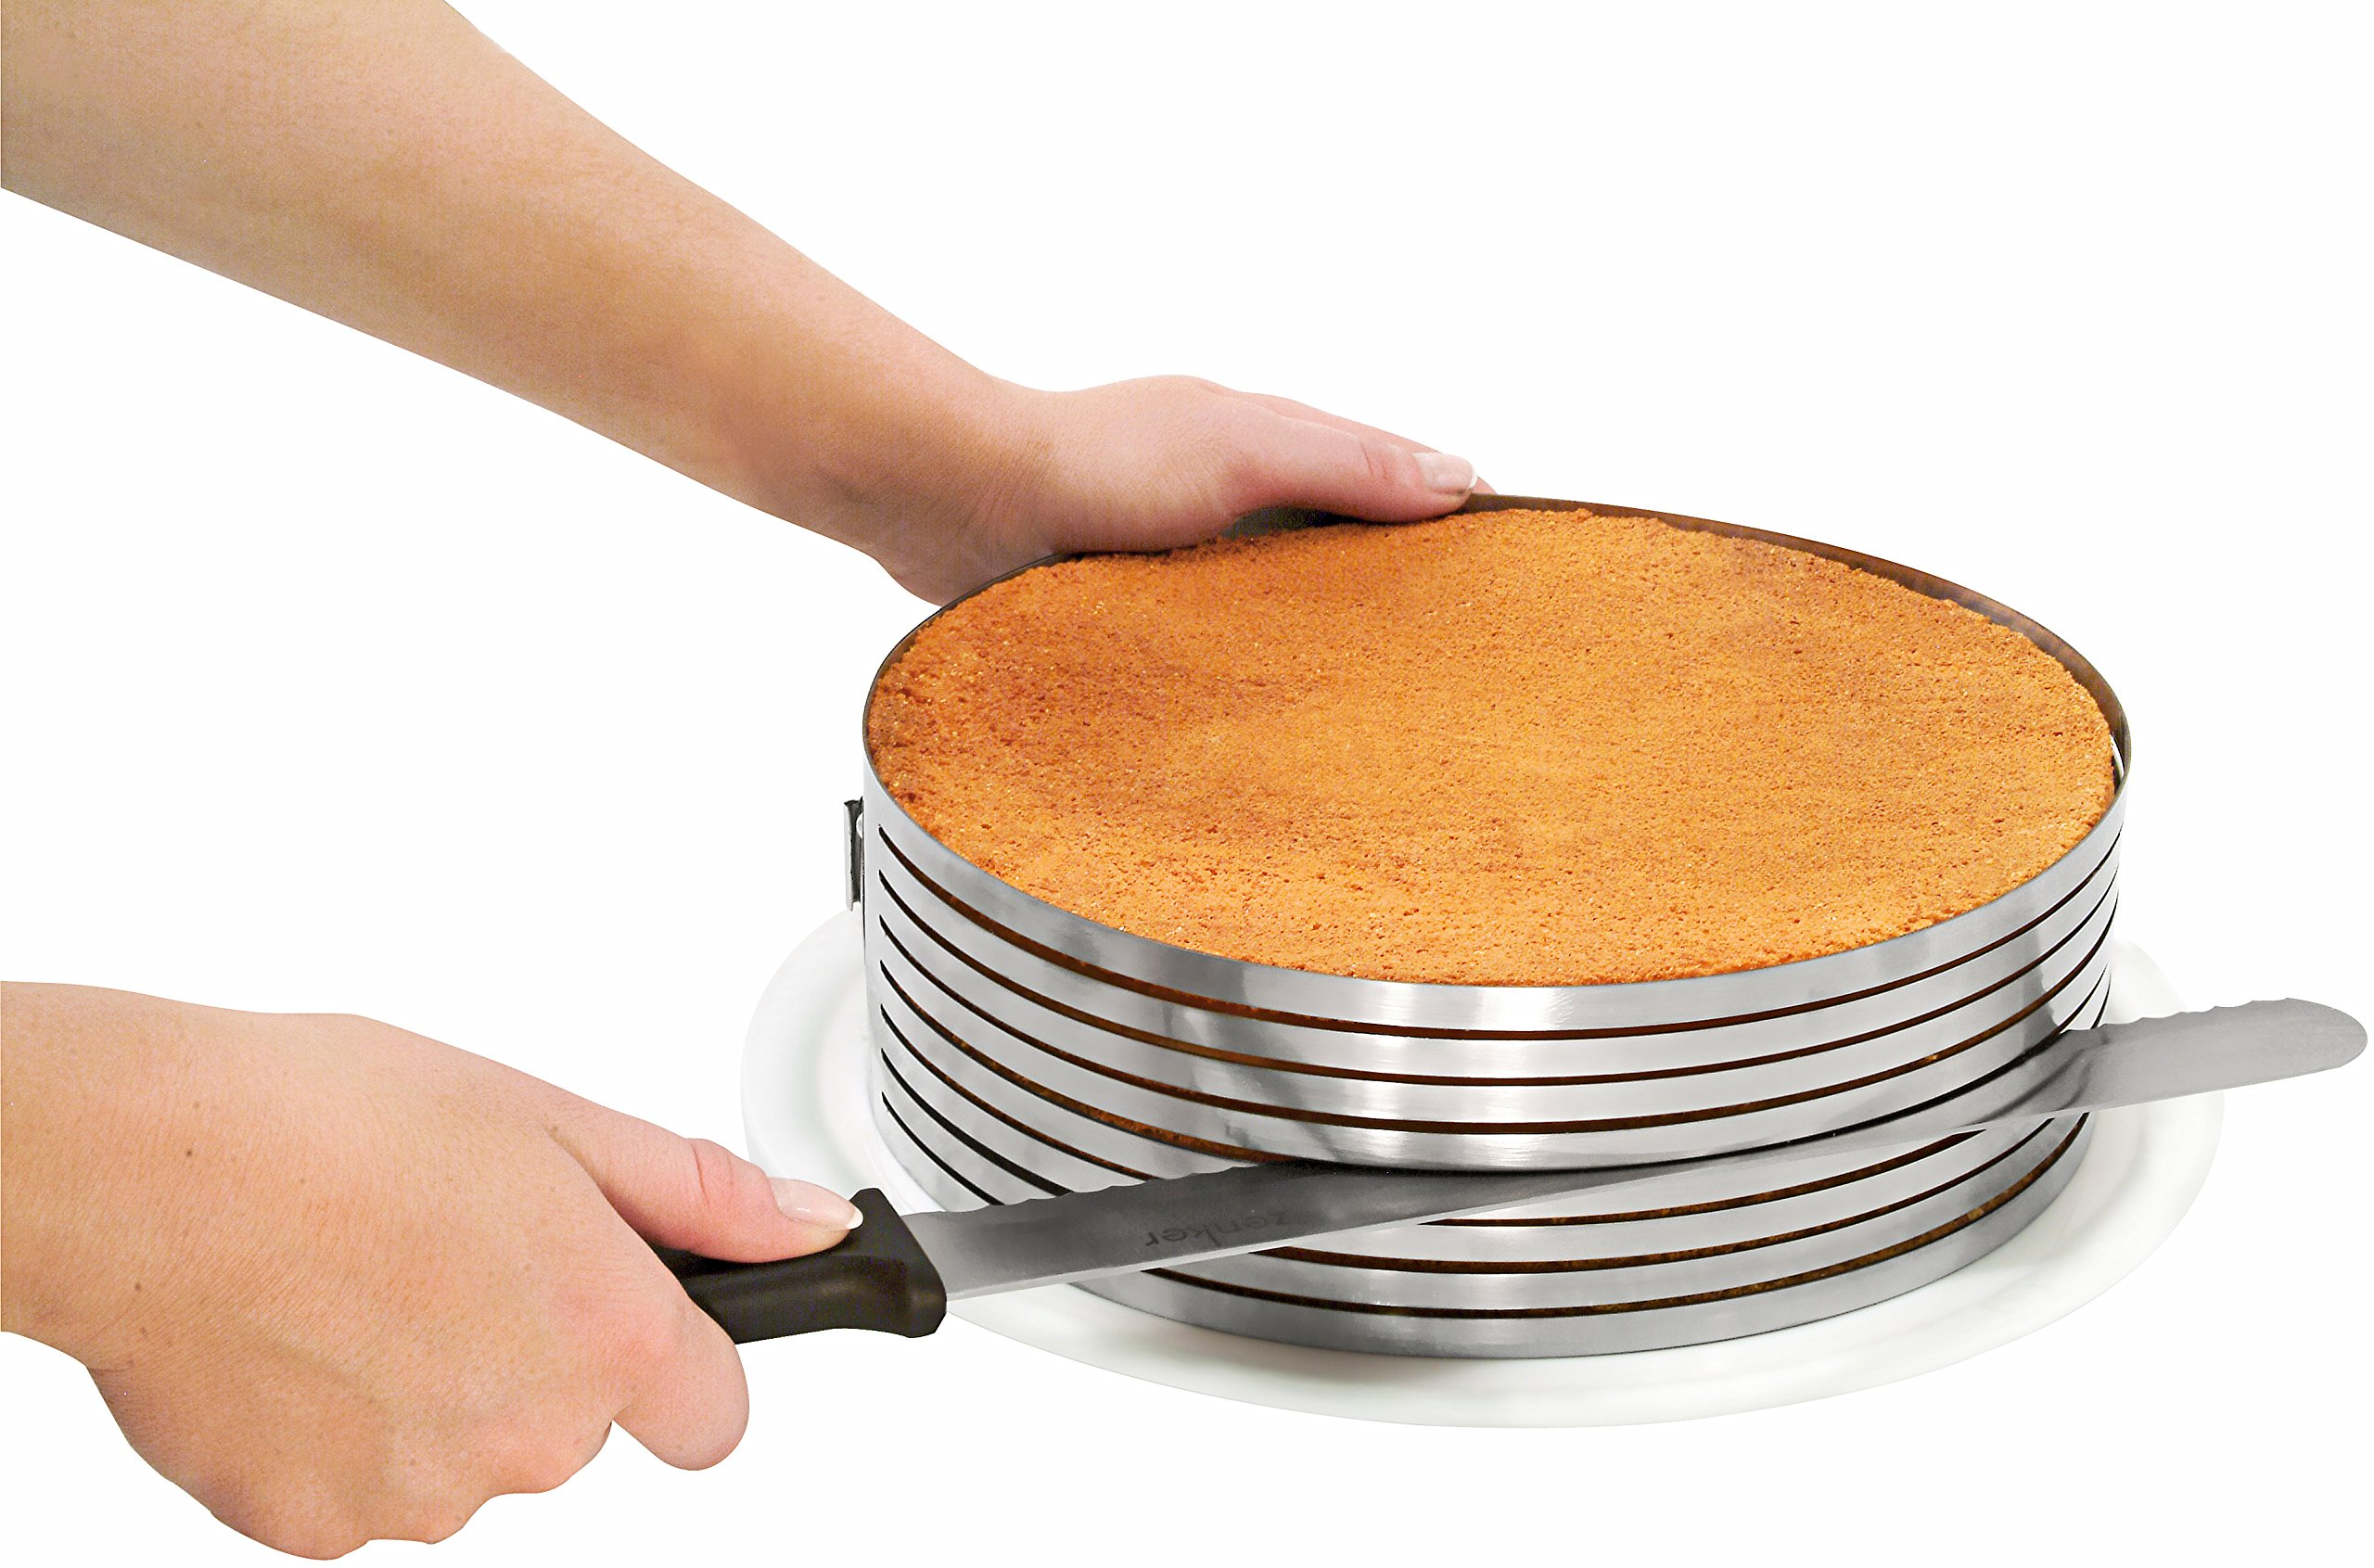 Zenker Stainless Steel Layer Cake Slicing Kit with 12'' Serrated Knife, 3-Piece by Zenker (Image #3)